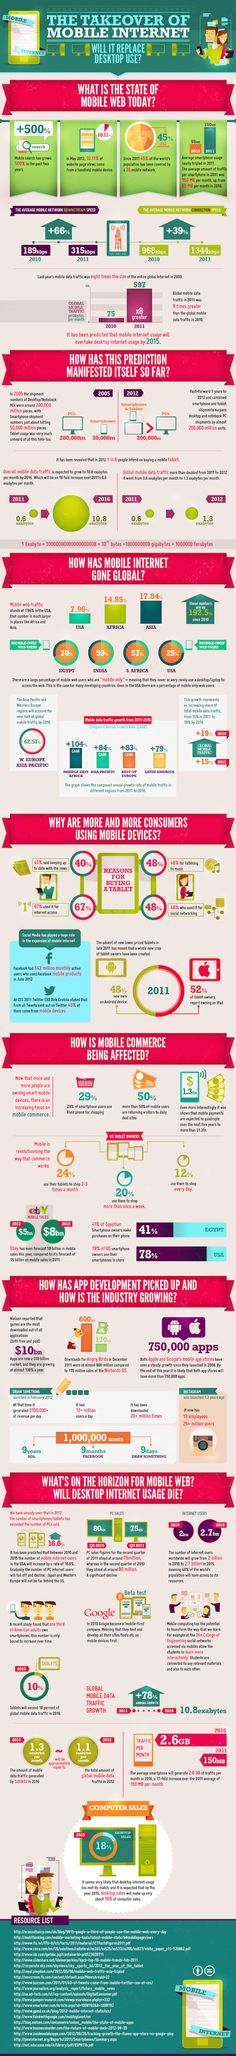 The Takeover of Mobile Internet #Infographic